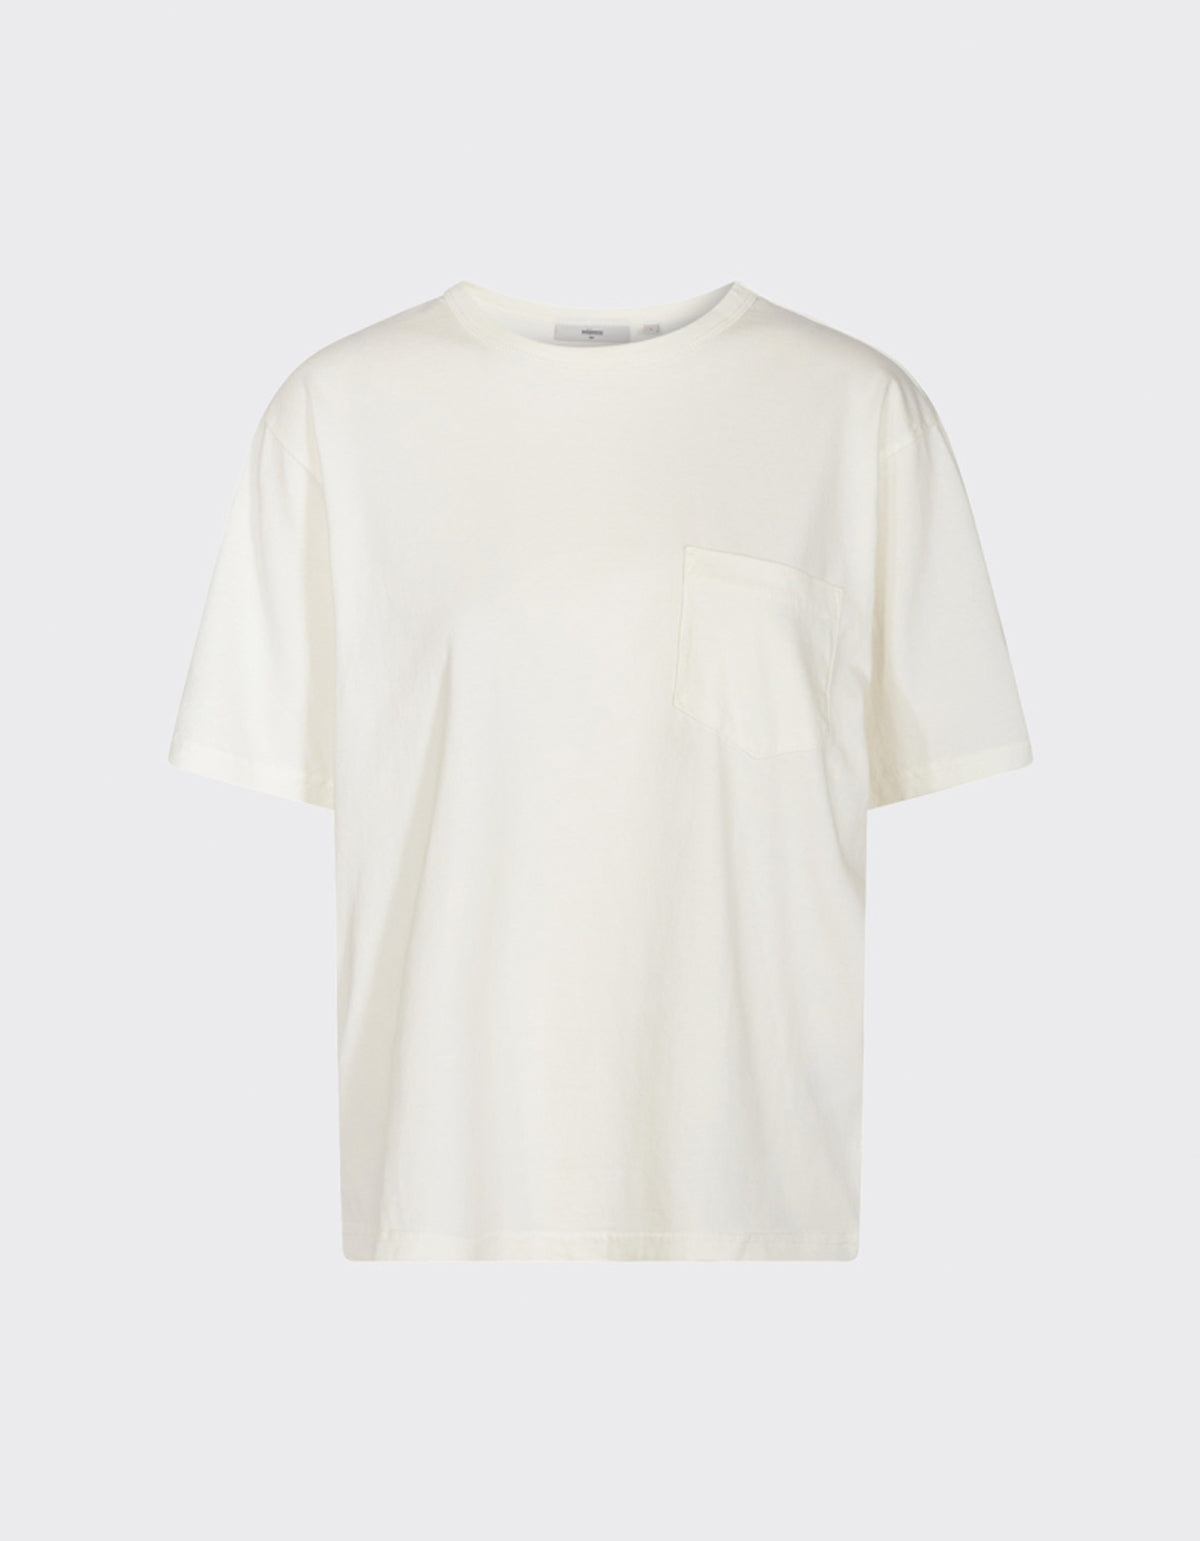 Minimum Shara Tee Broken White